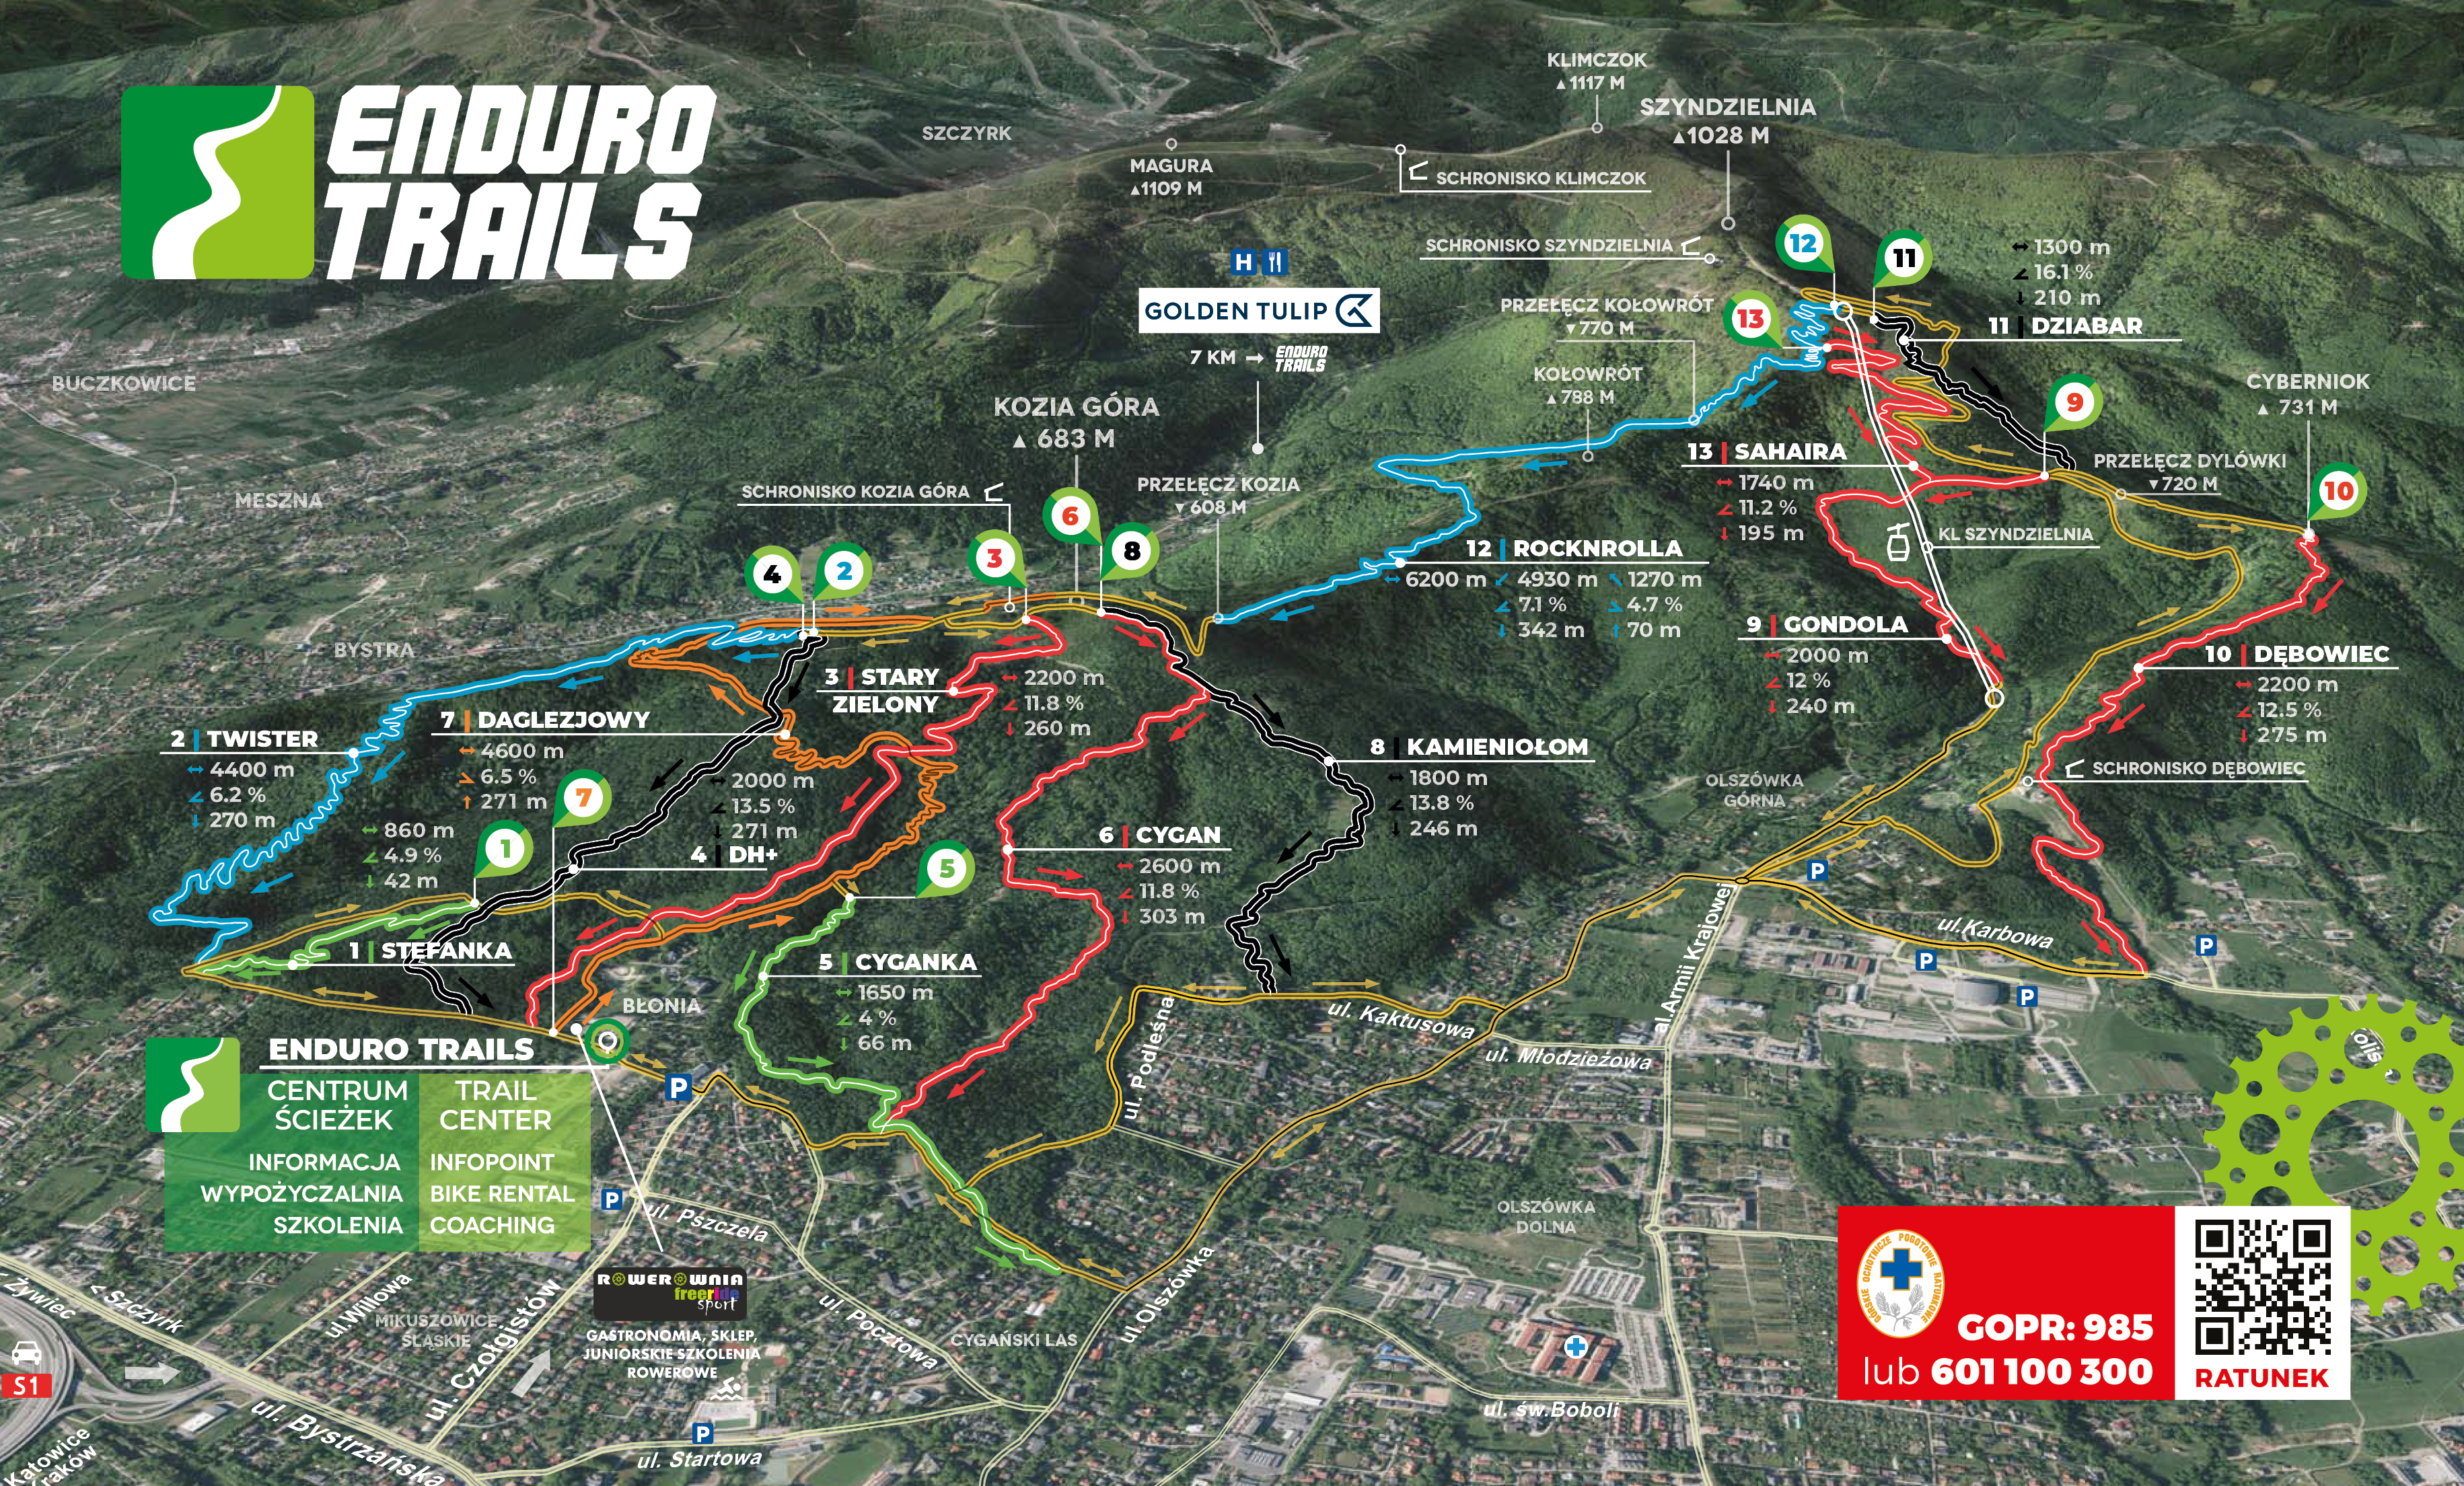 Map of trails – Enduro Trails